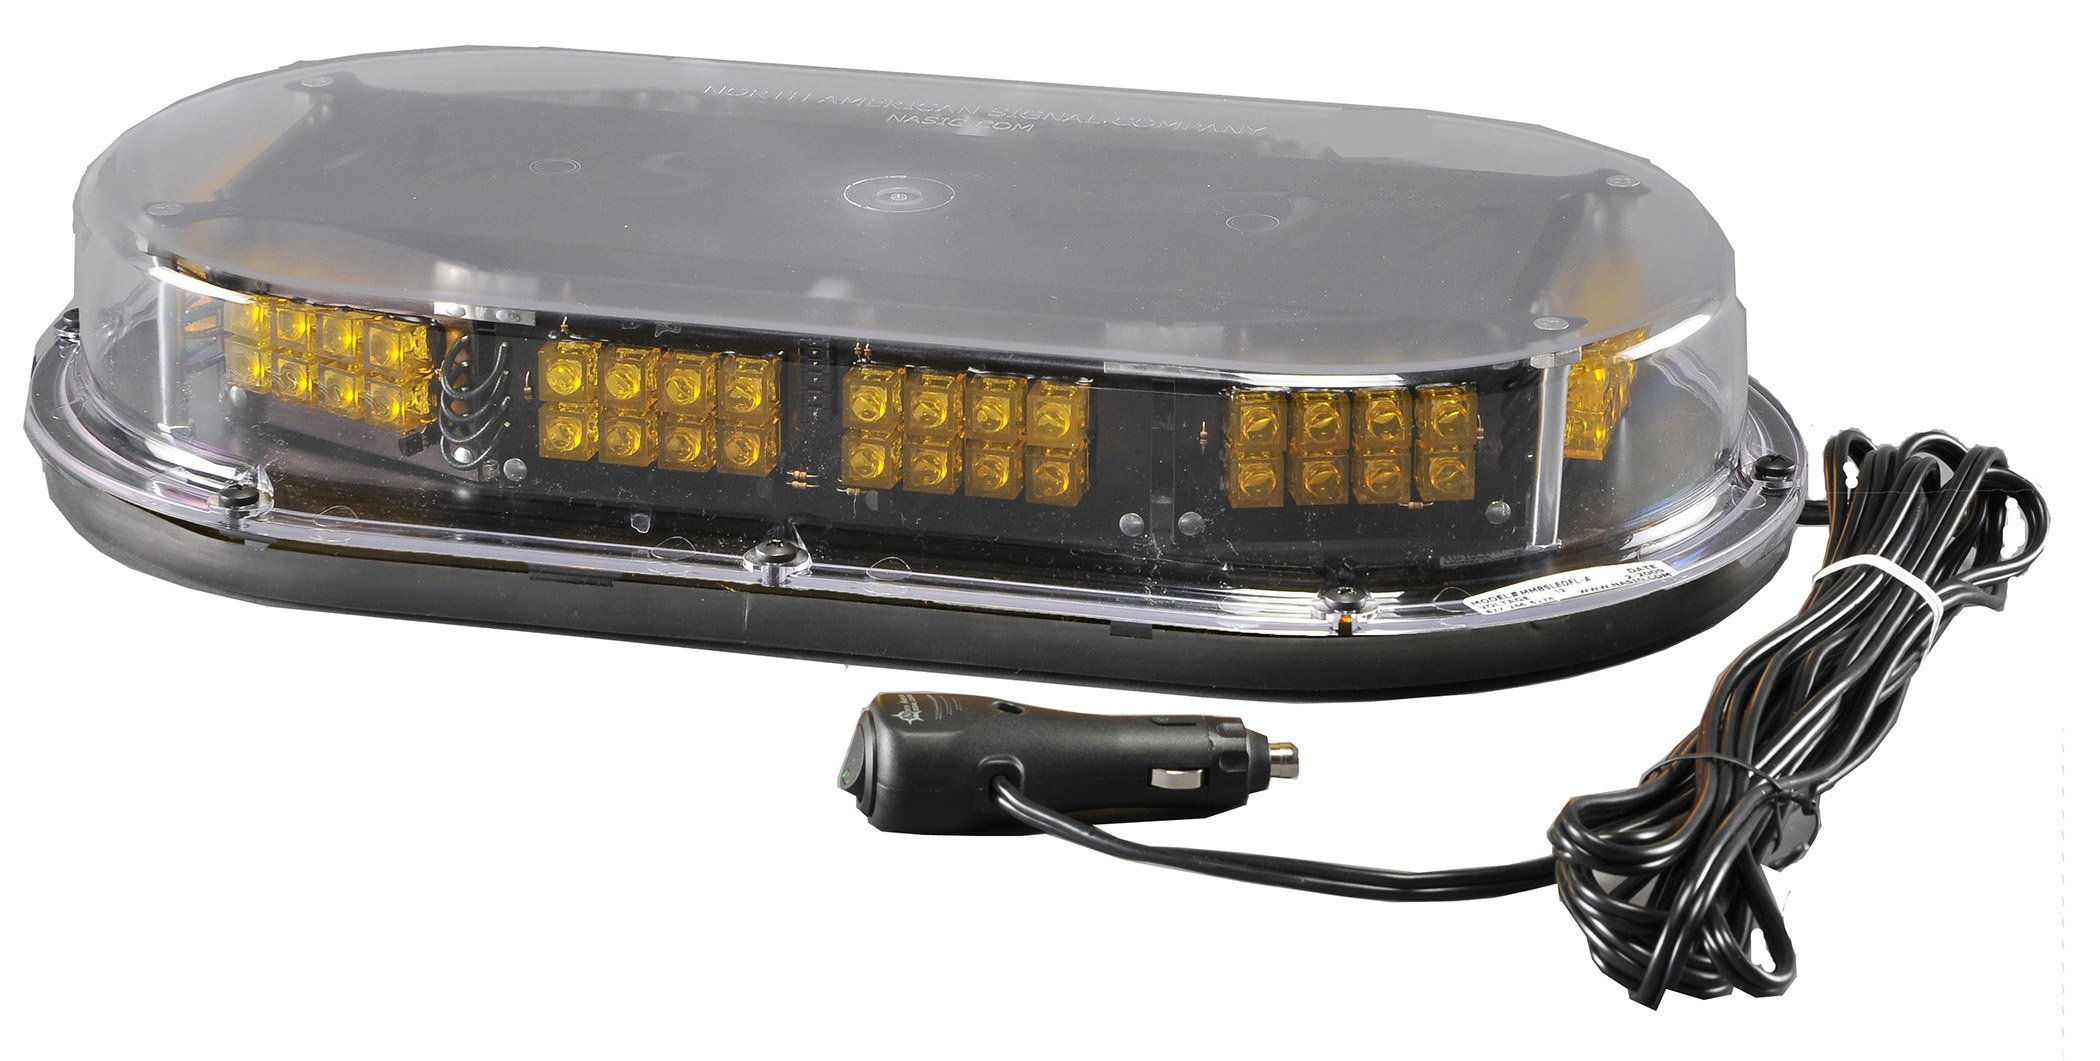 North American Signal MMBSLEDFLM-C/A LED Mini Light Bar with Magnetic Mount, 12/24V, 1.4A Current, Amber